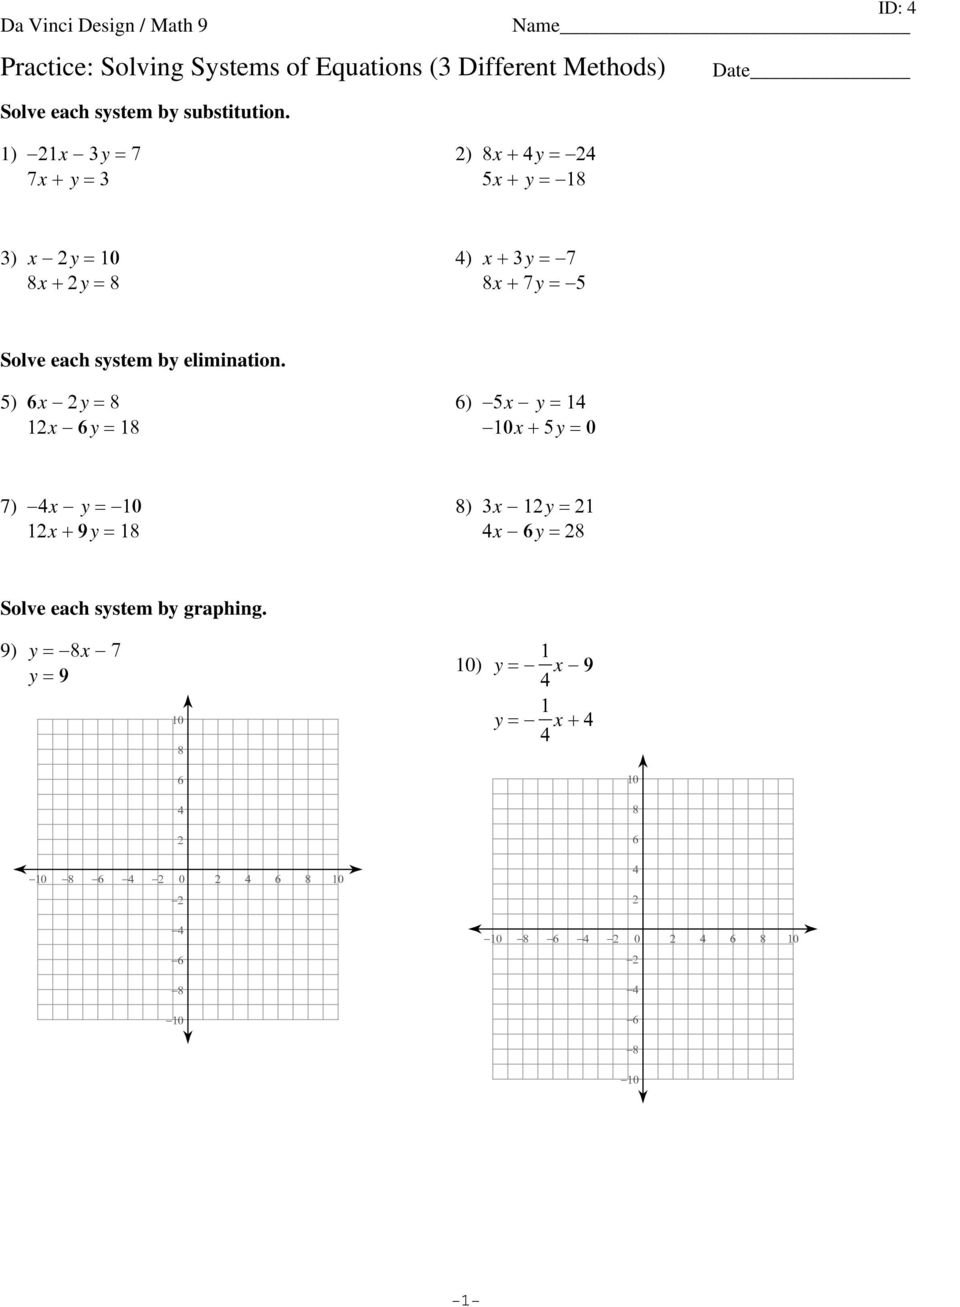 Solving Systems Of Equationselimination Worksheet Pdf Inside Solving Systems Of Equations By Elimination Worksheet Pdf